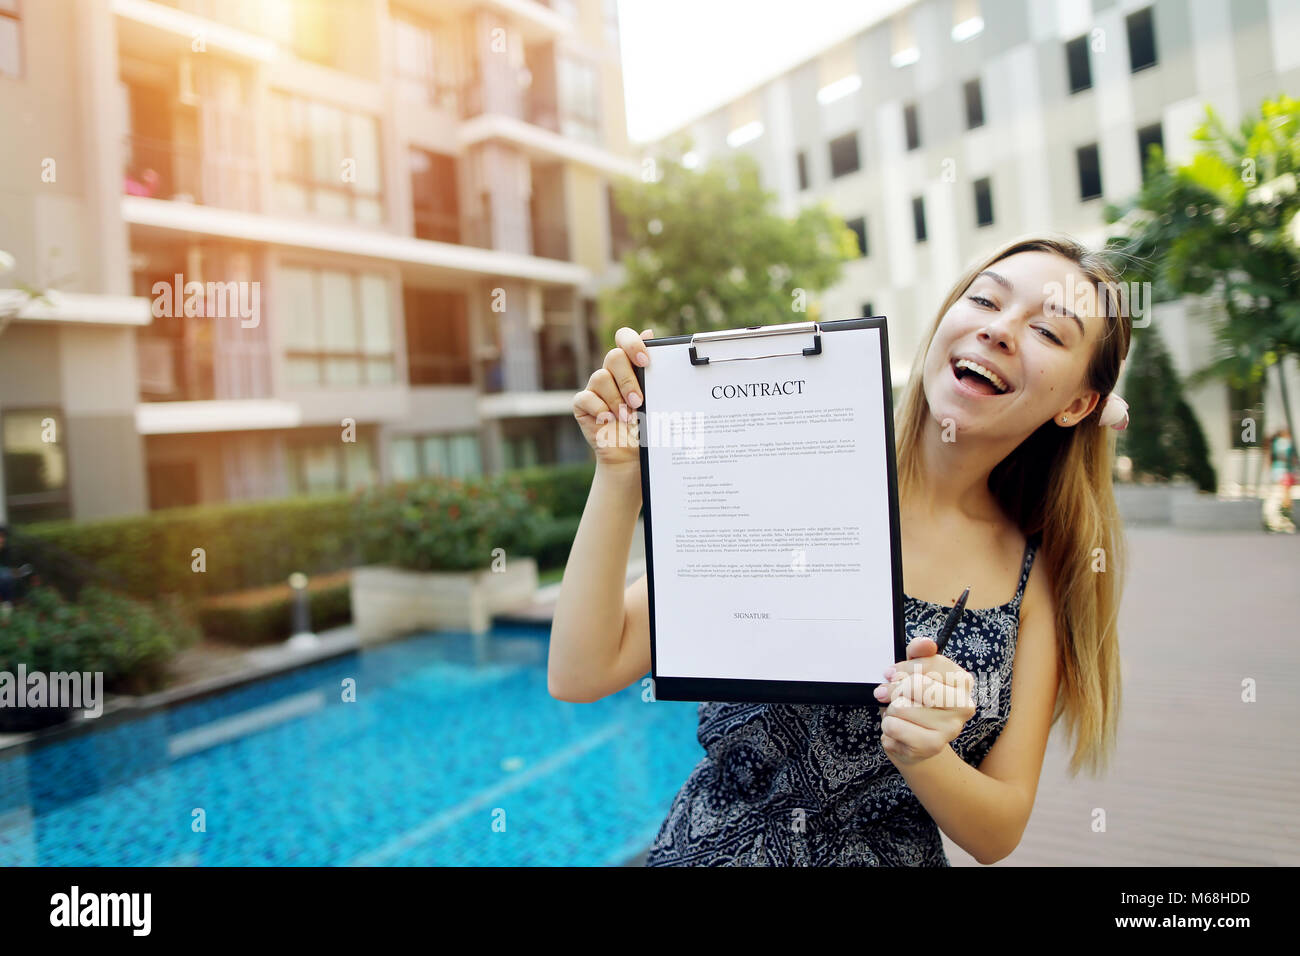 young girl proposes to sign contract to live in warm countries beautiful girl on background of pool suggests signing Stock Photo